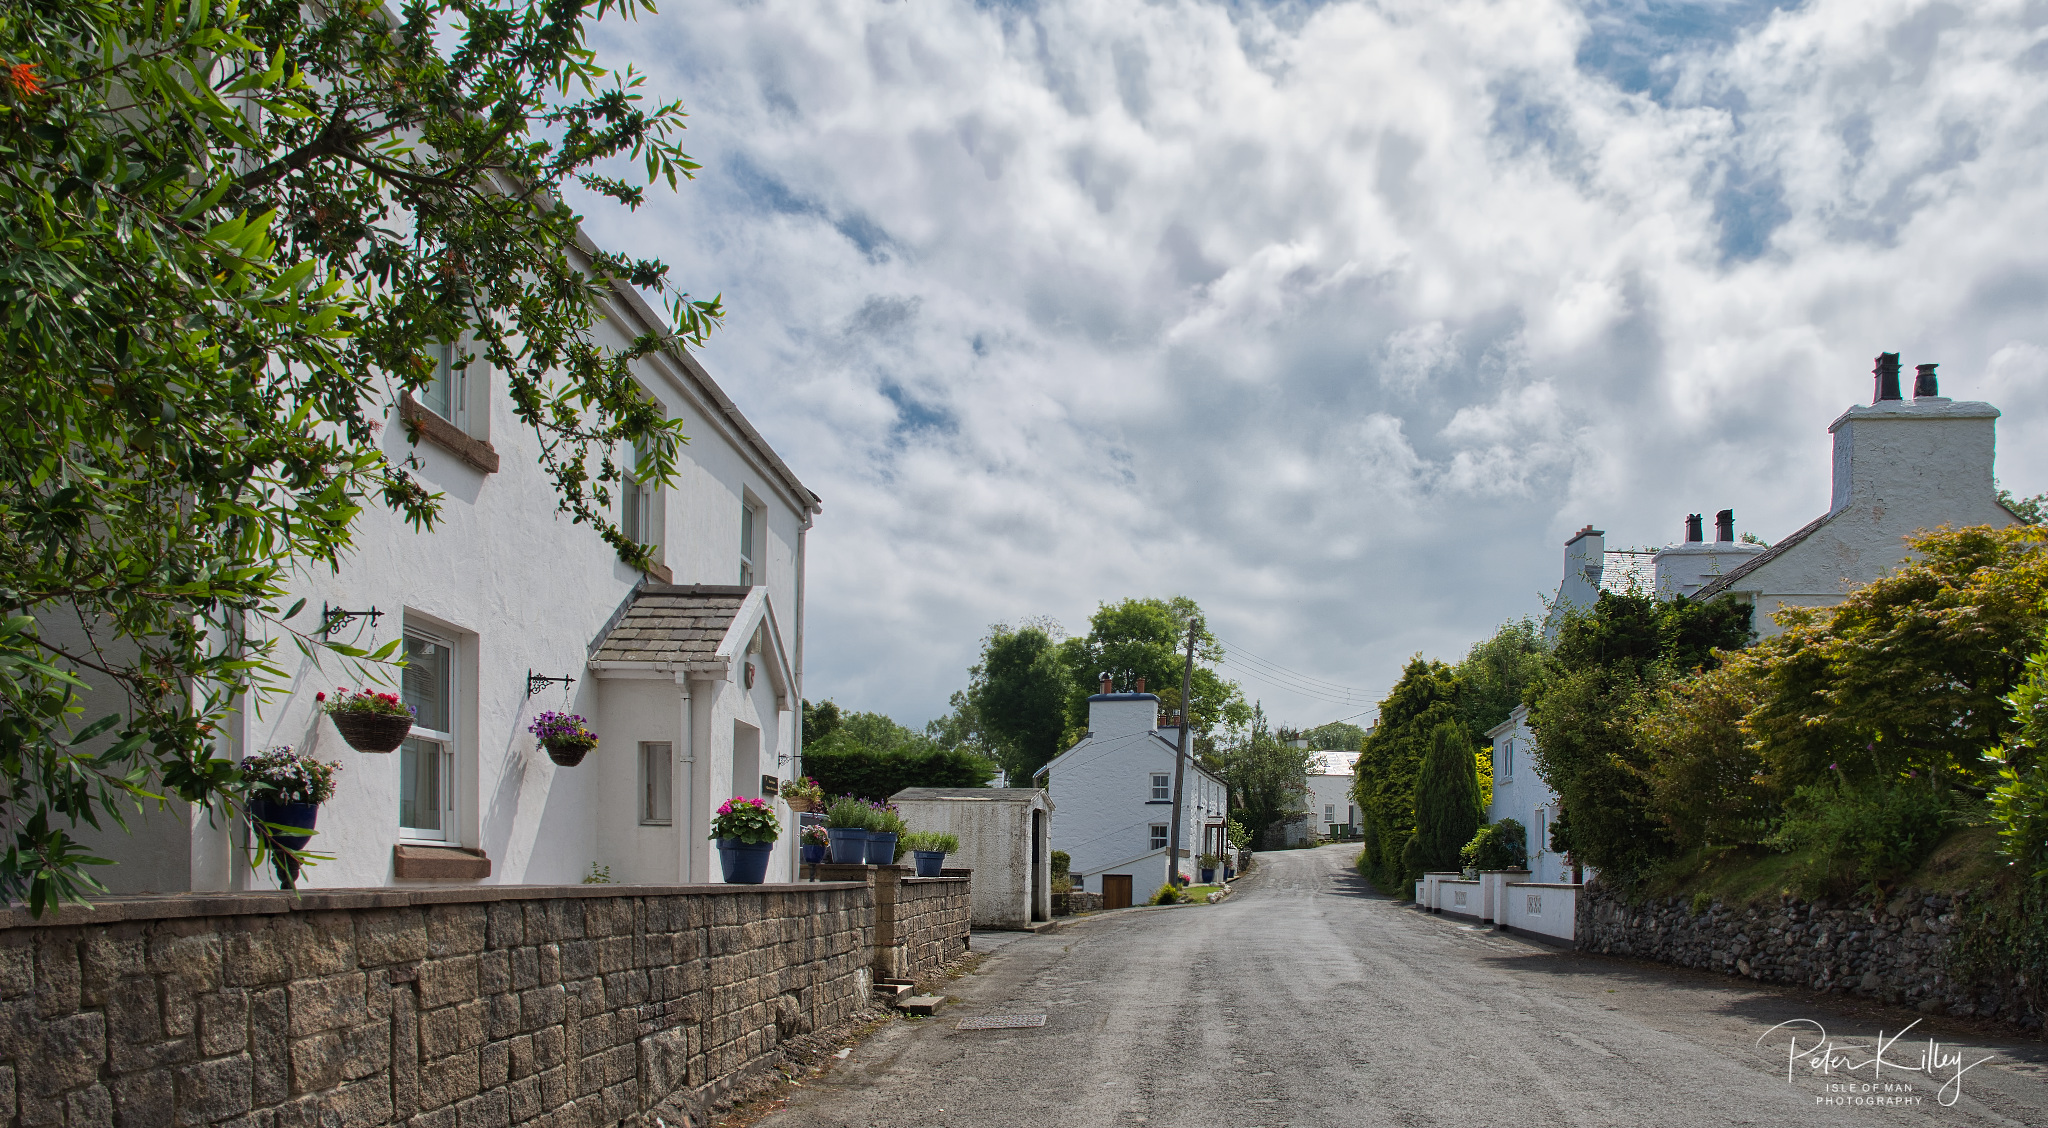 West Baldwin Village - © Peter Killey - www.manxscenes.com